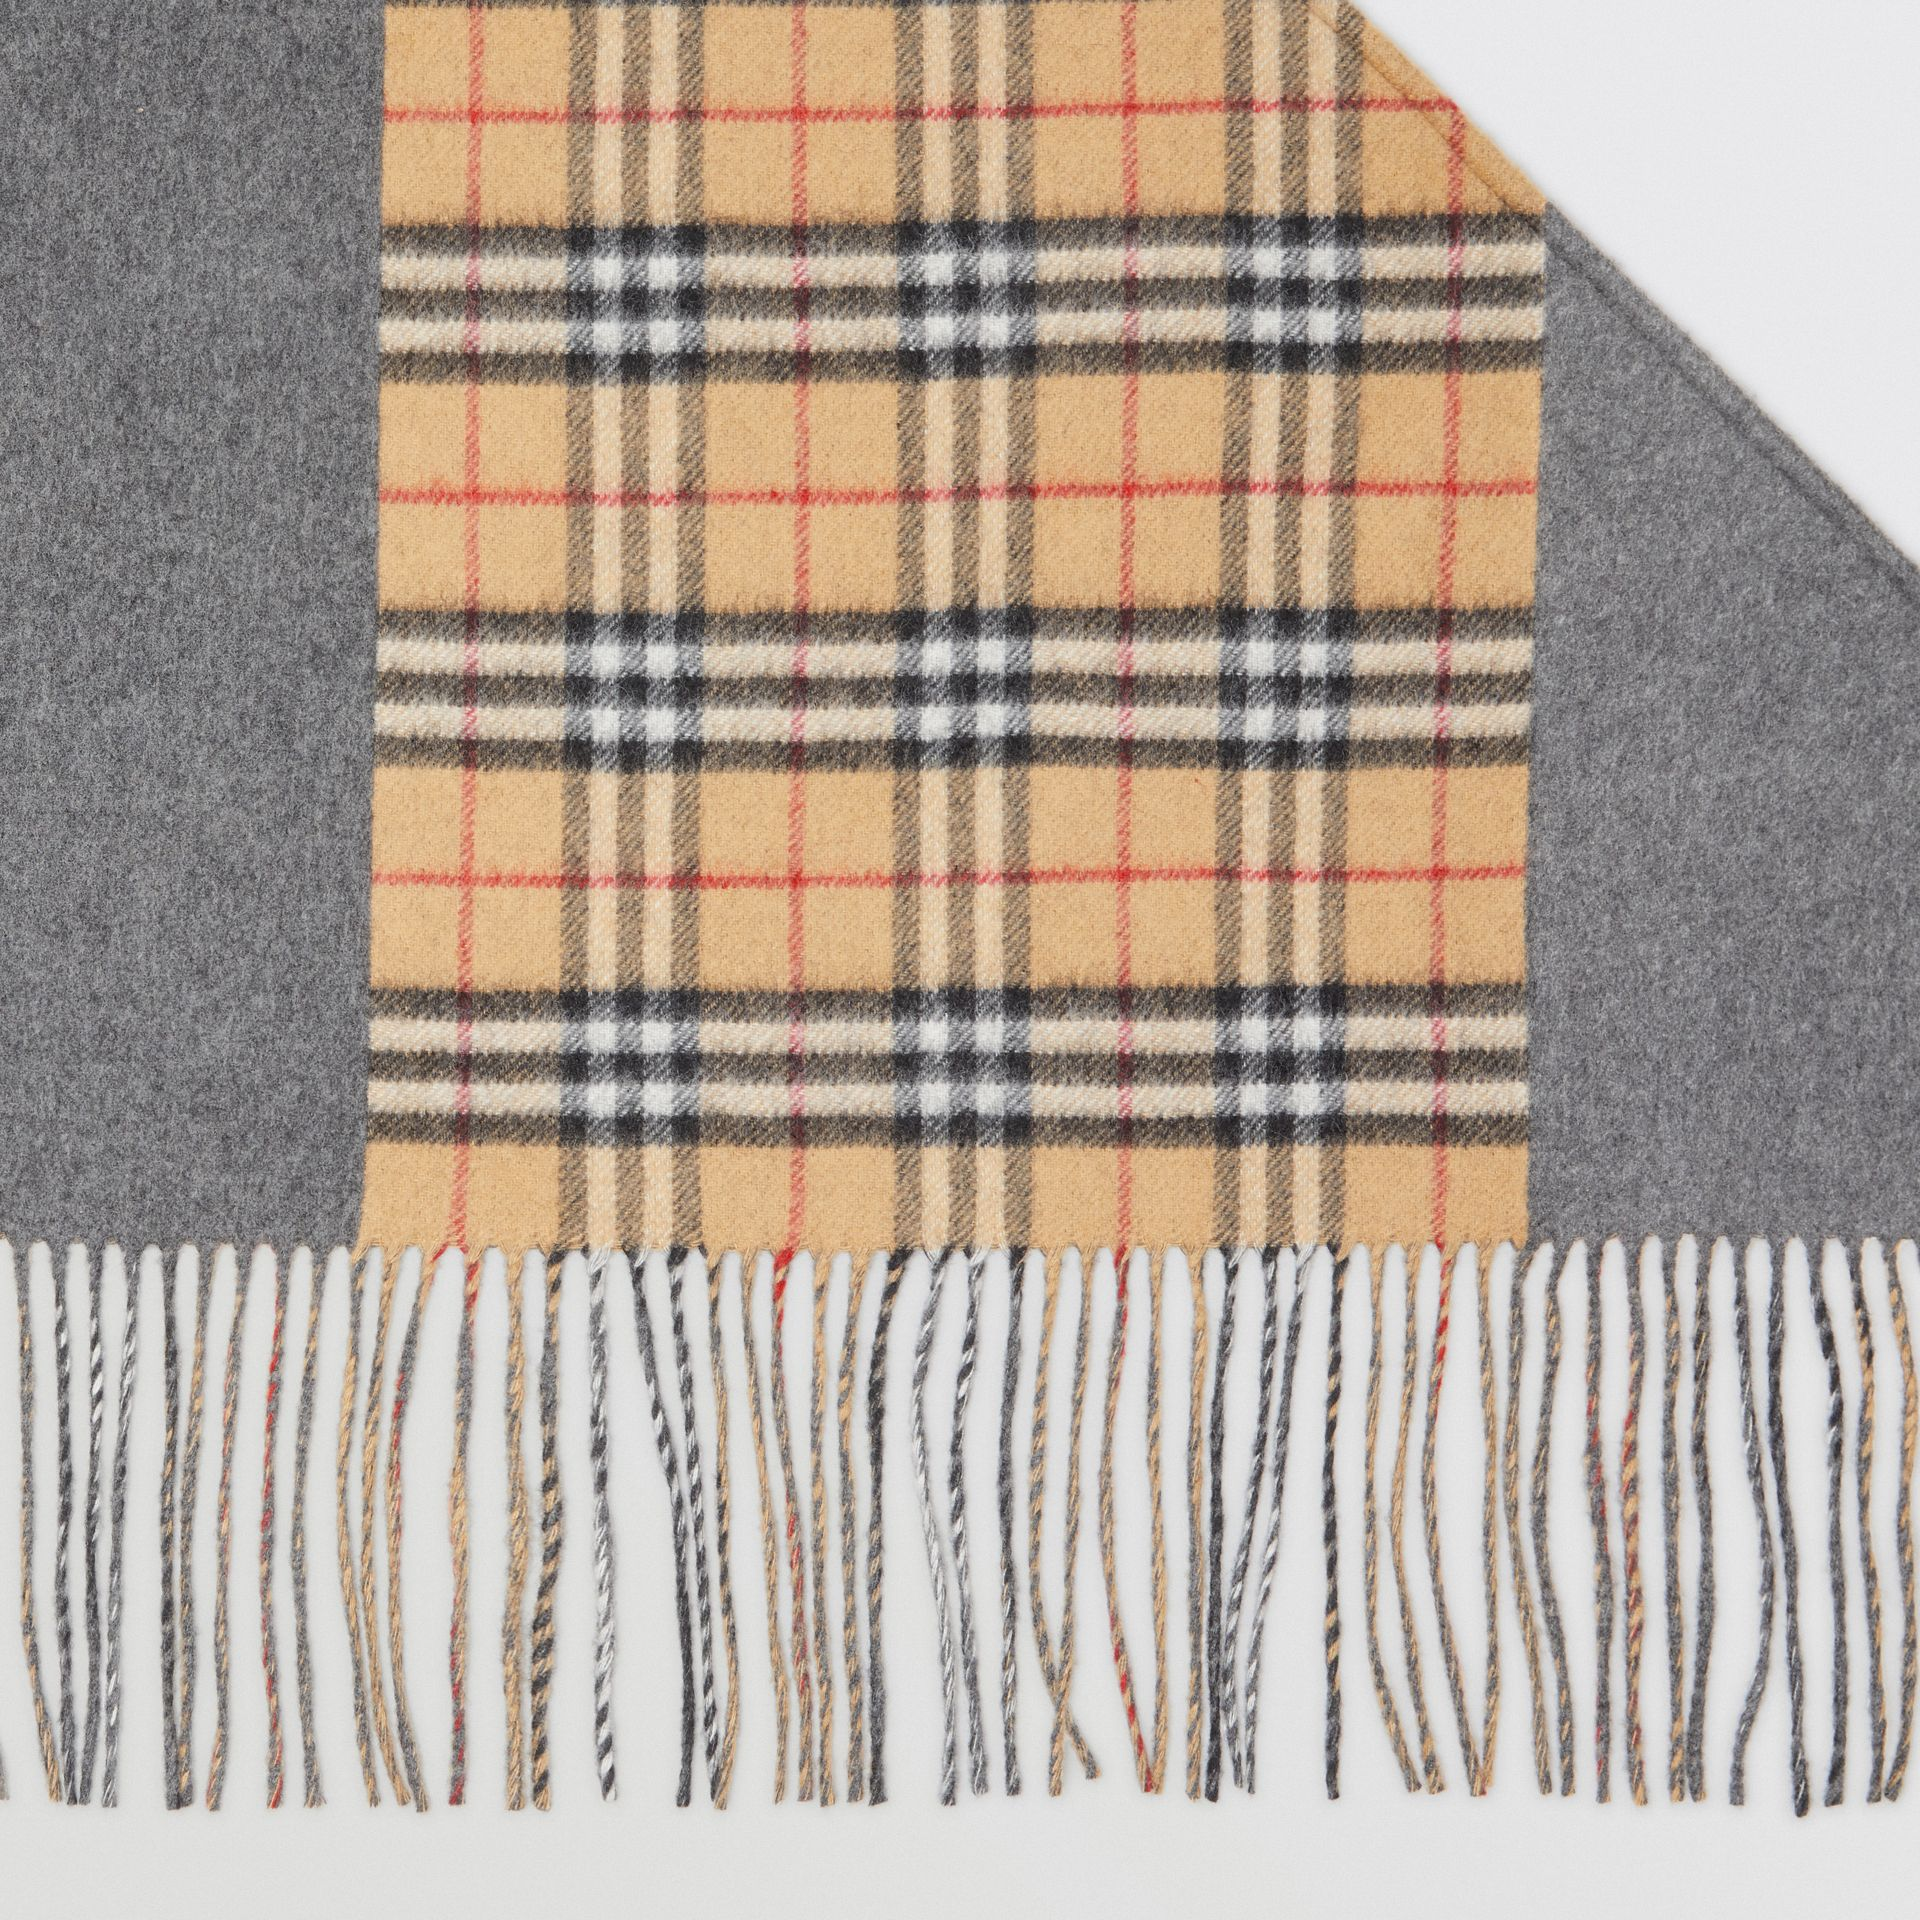 The Burberry Bandana in Vintage Check Cashmere in Pewter Grey | Burberry - gallery image 1